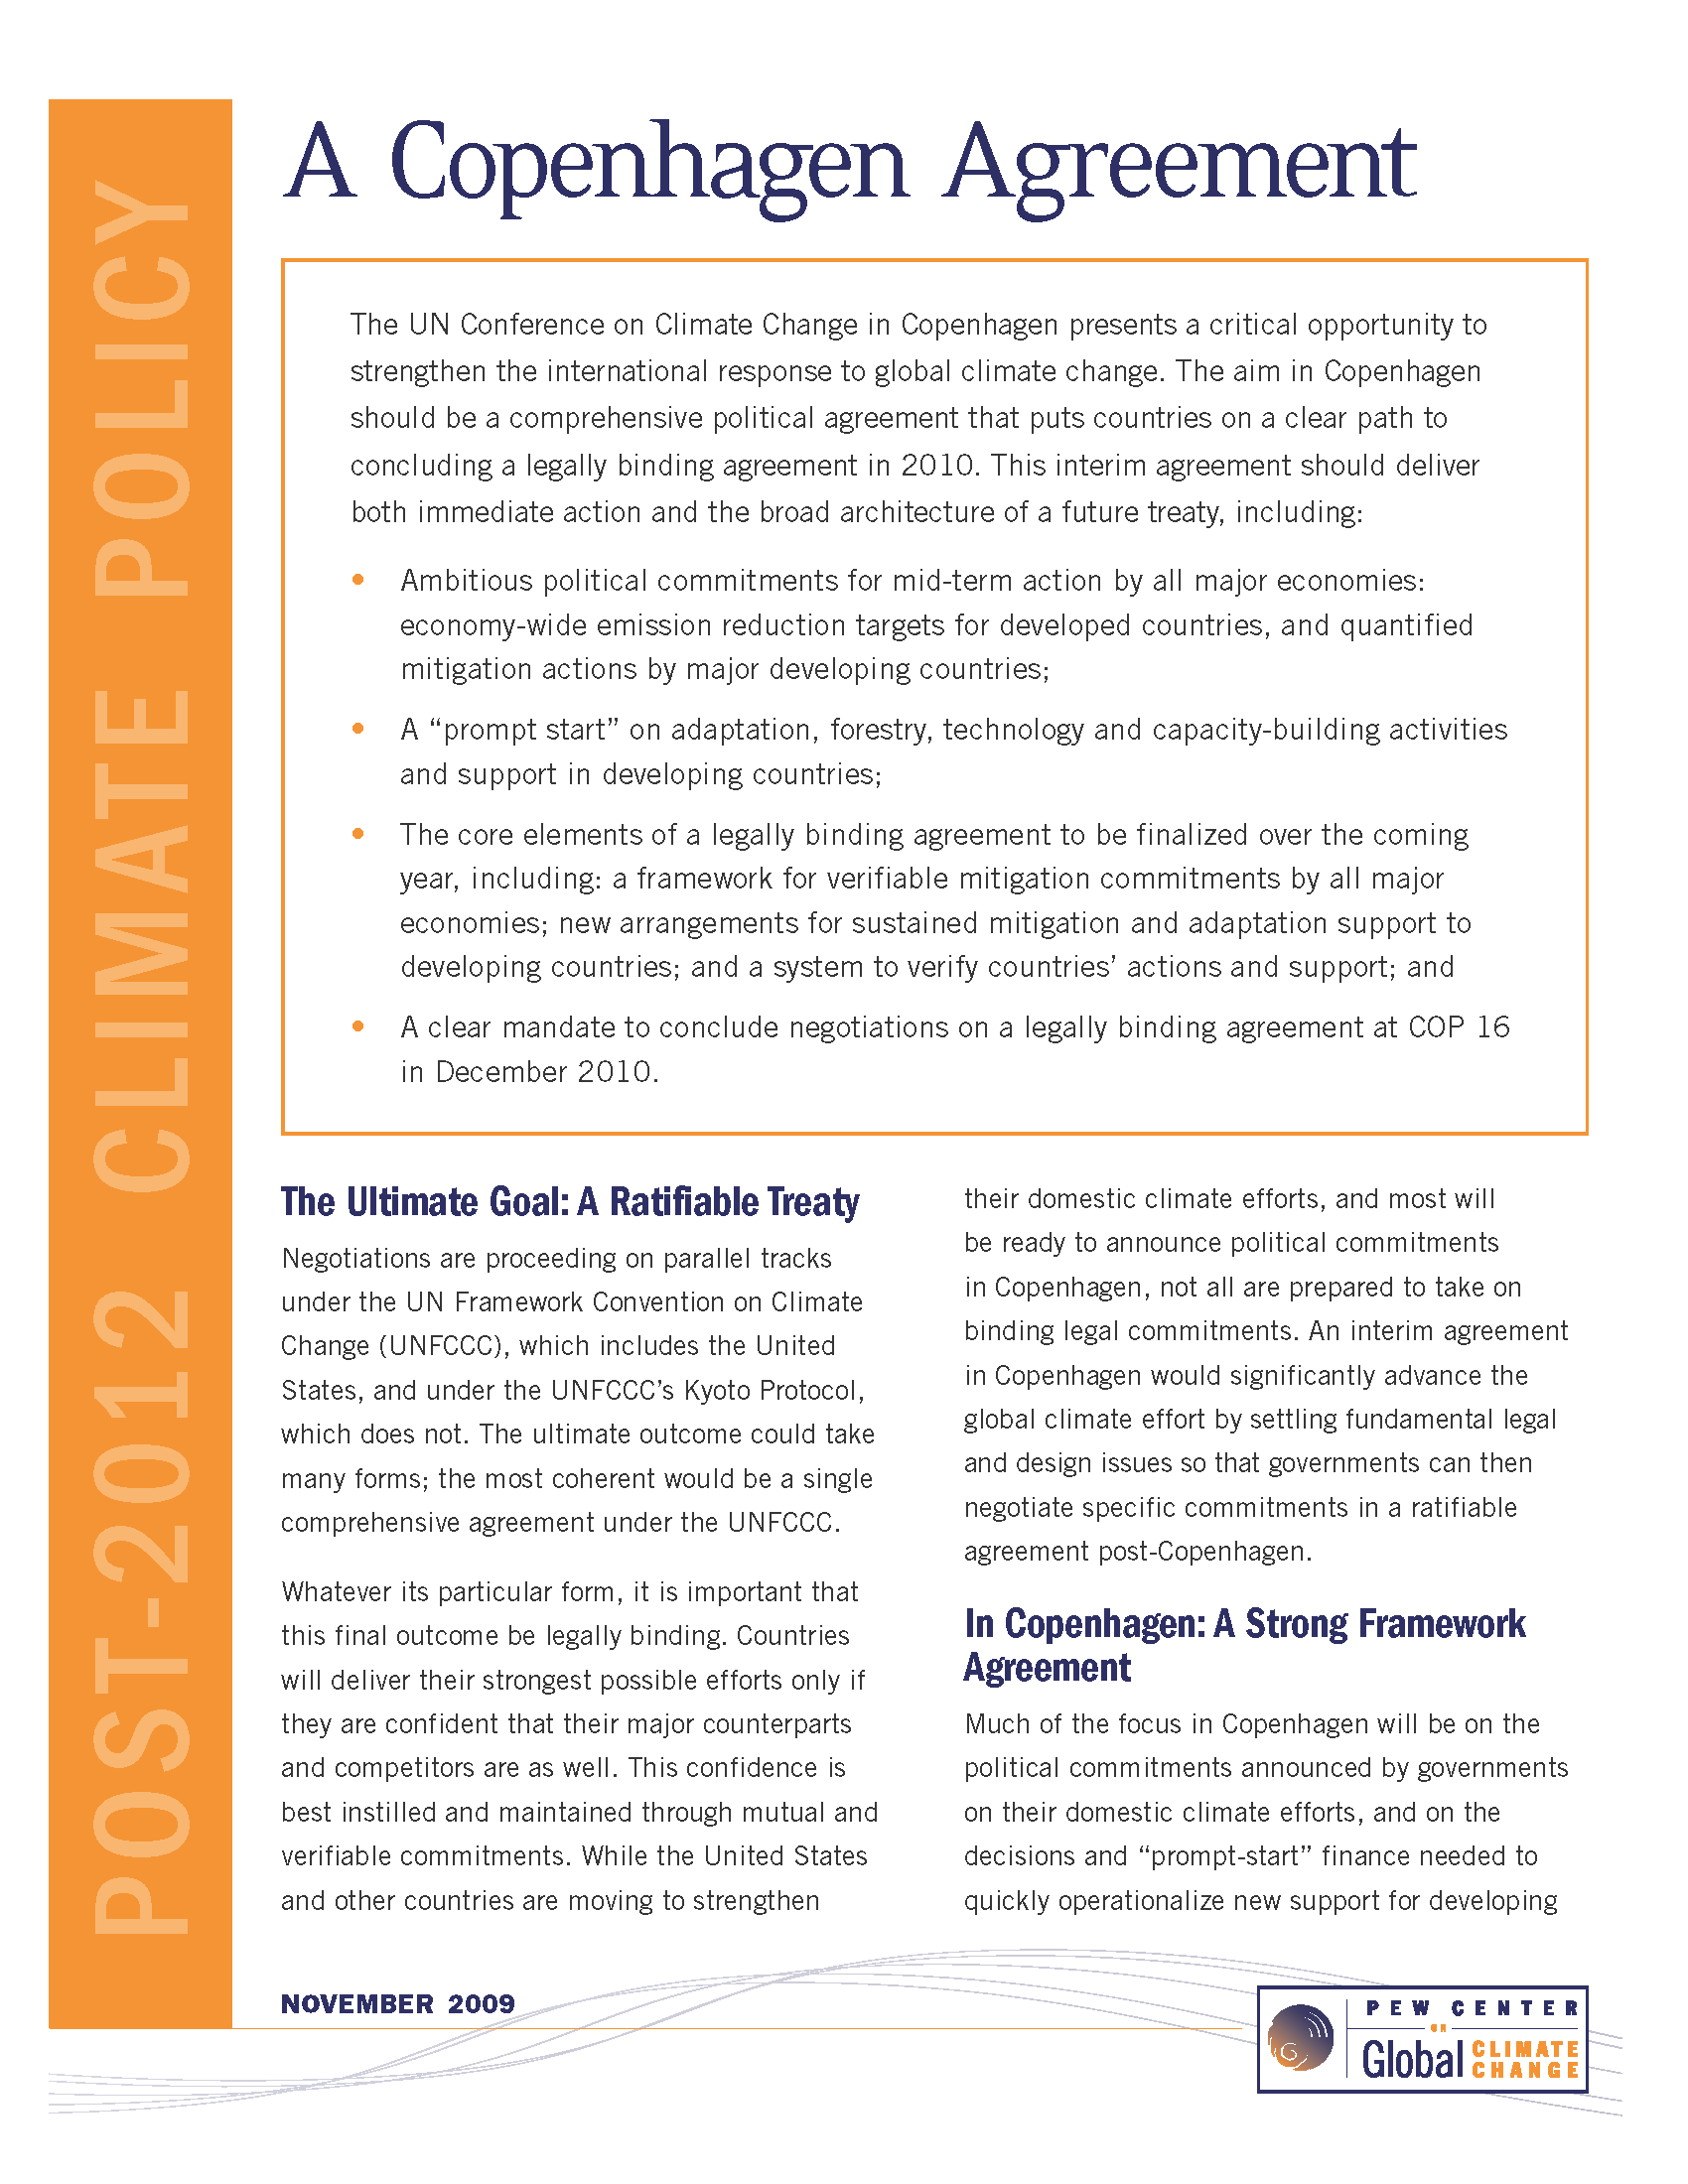 A Copenhagen Climate Agreement Center For Climate And Energy Solutions - Legally binding document